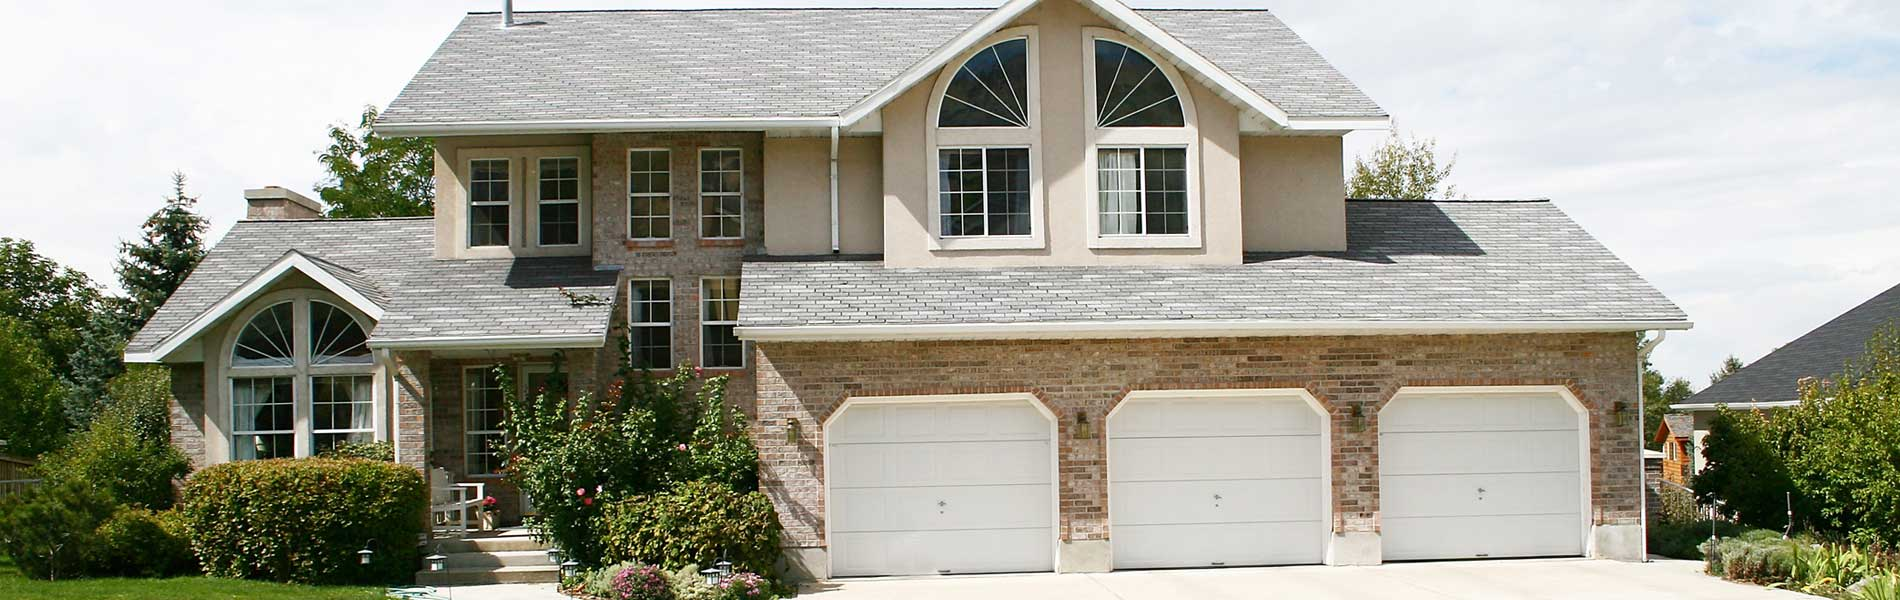 Elite Garage Door Service, Boulder, CO 303-954-4872